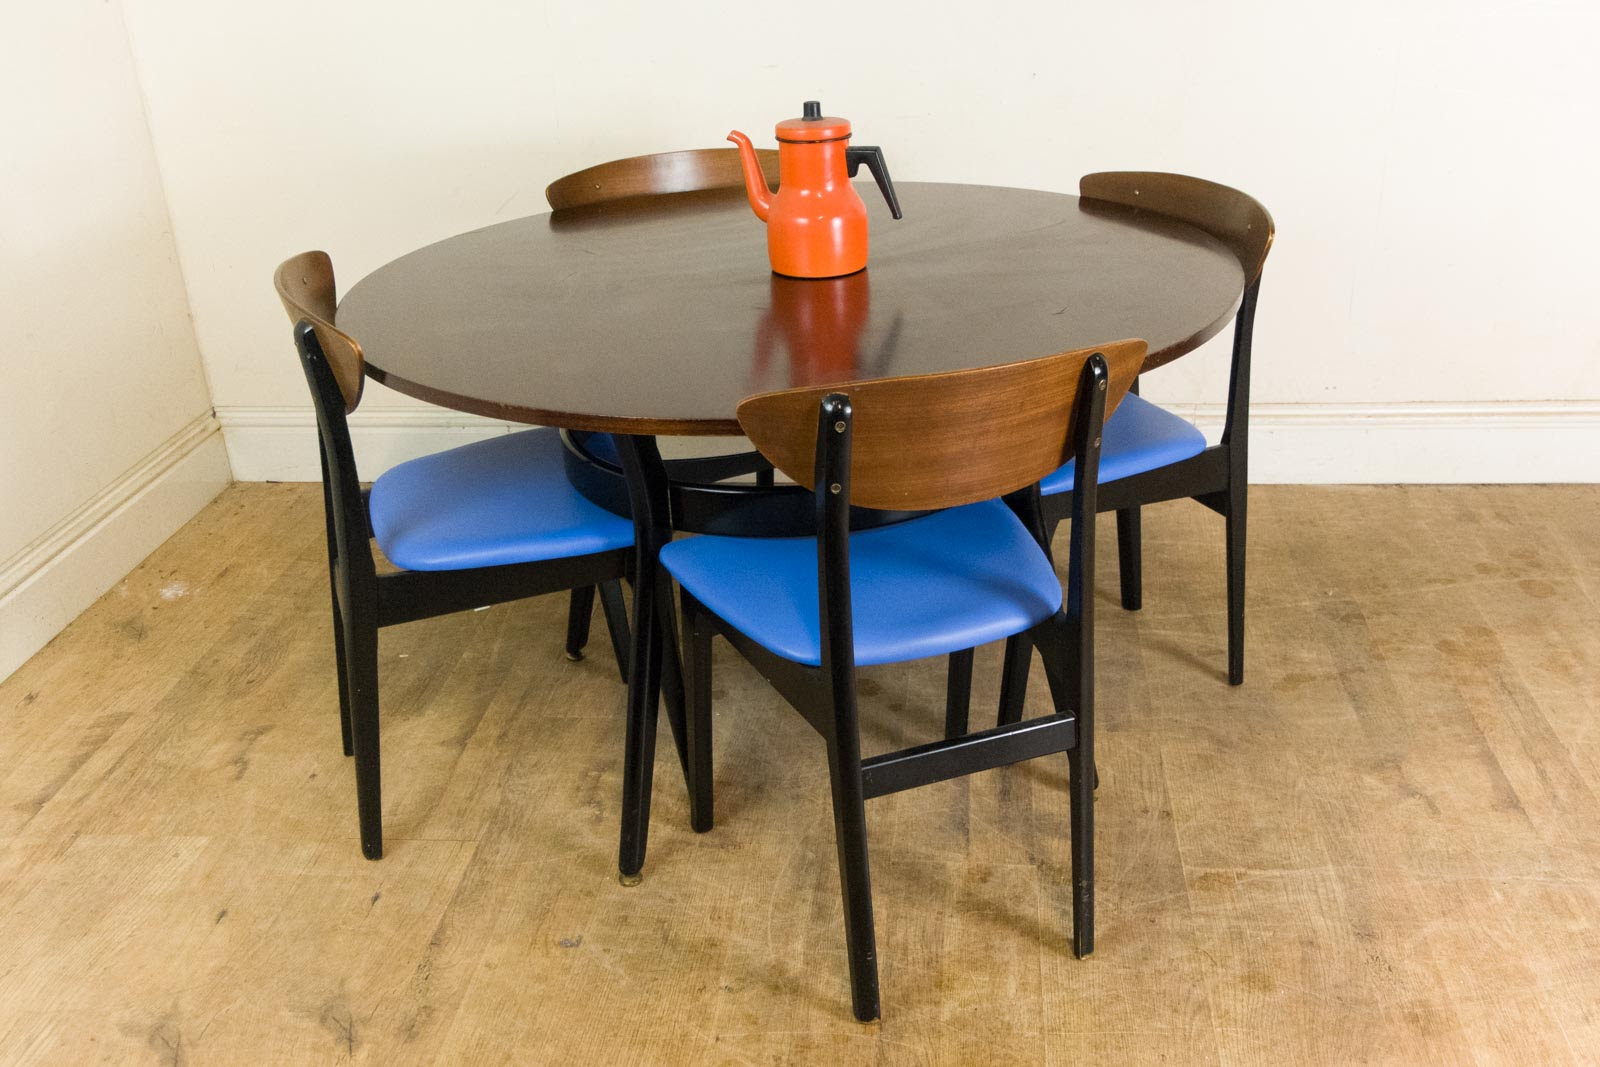 Vintage Retro G Plan Tola and Black Librenza Dining Table and 4 Butterfly Chairs